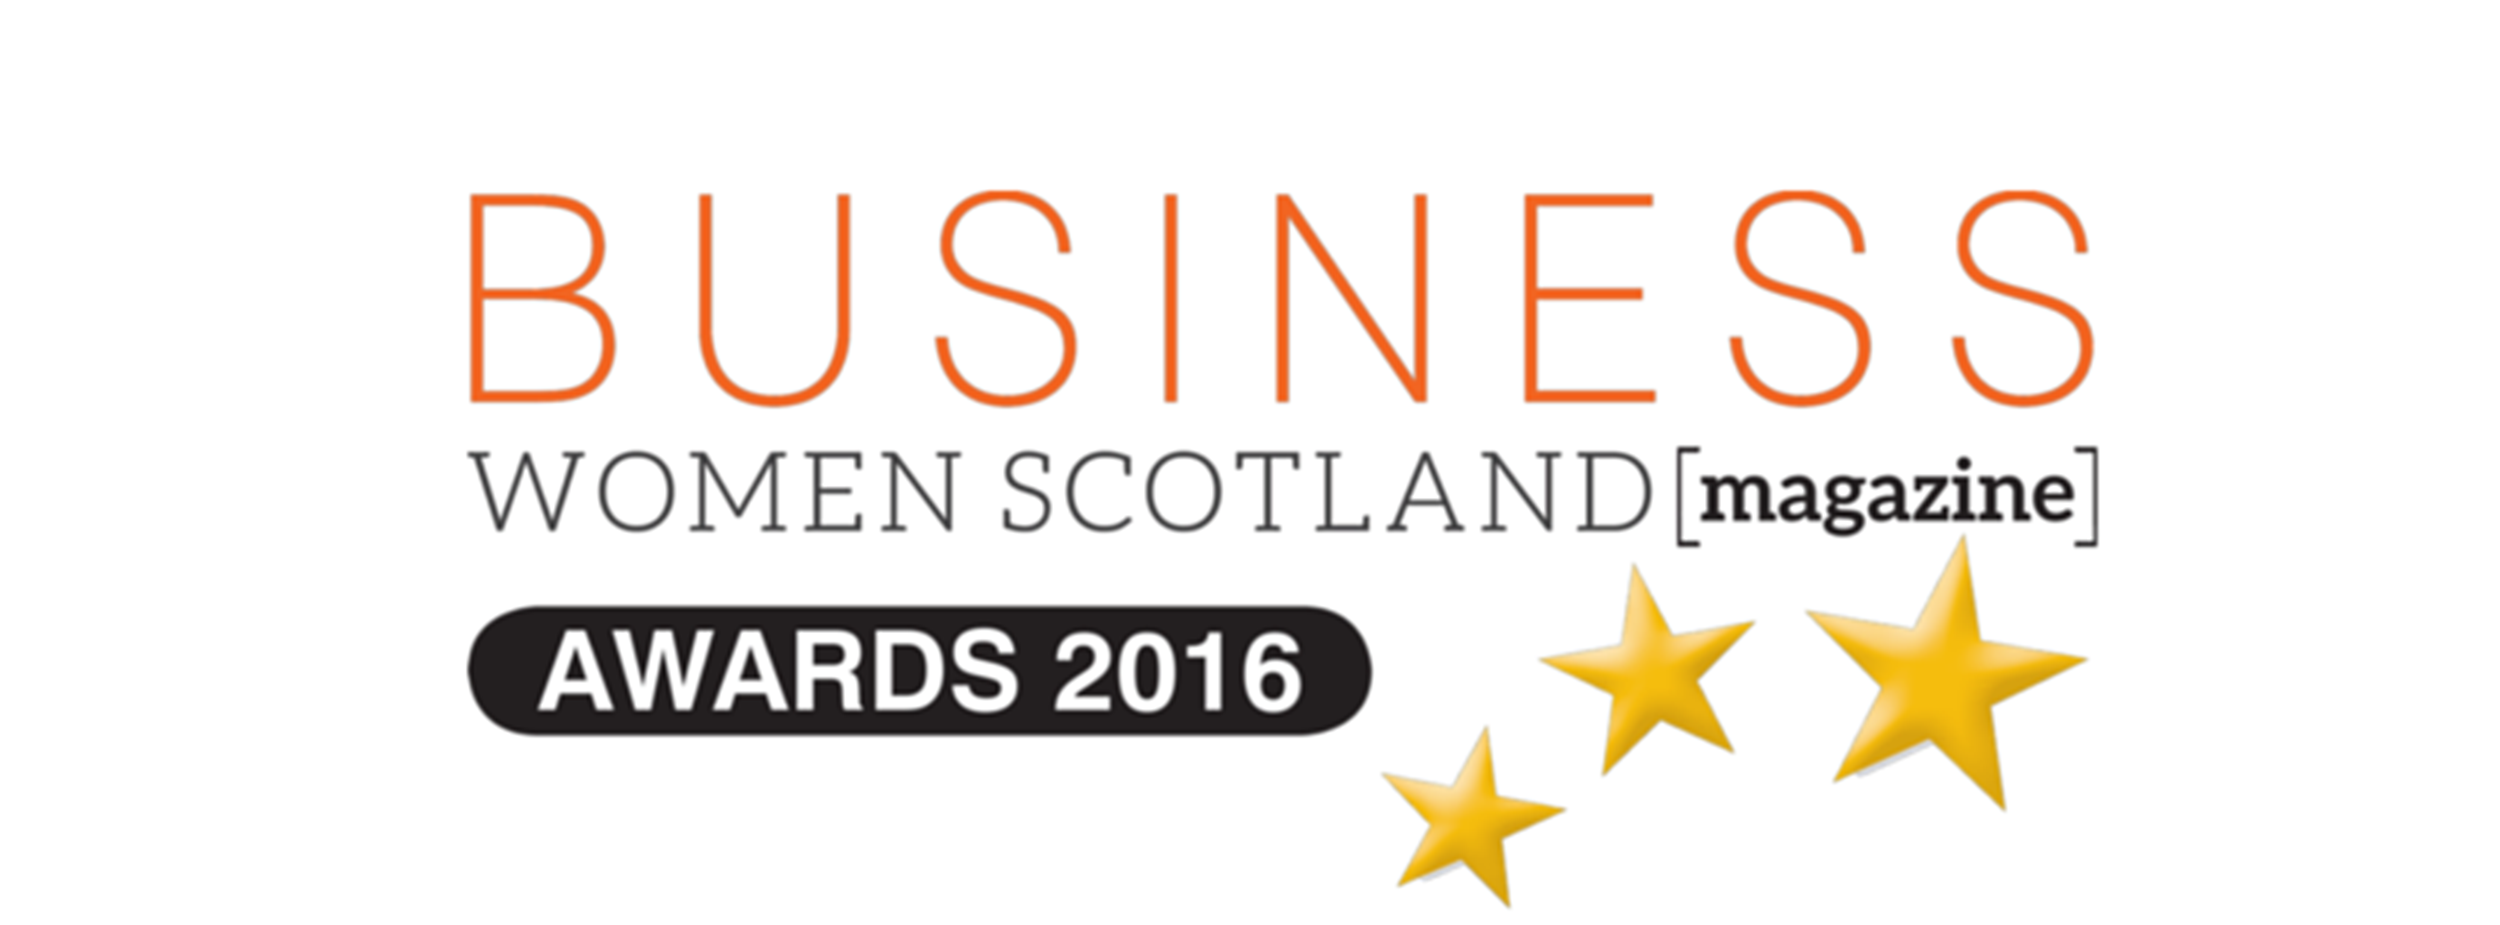 Business Women Scotland Awards 2016